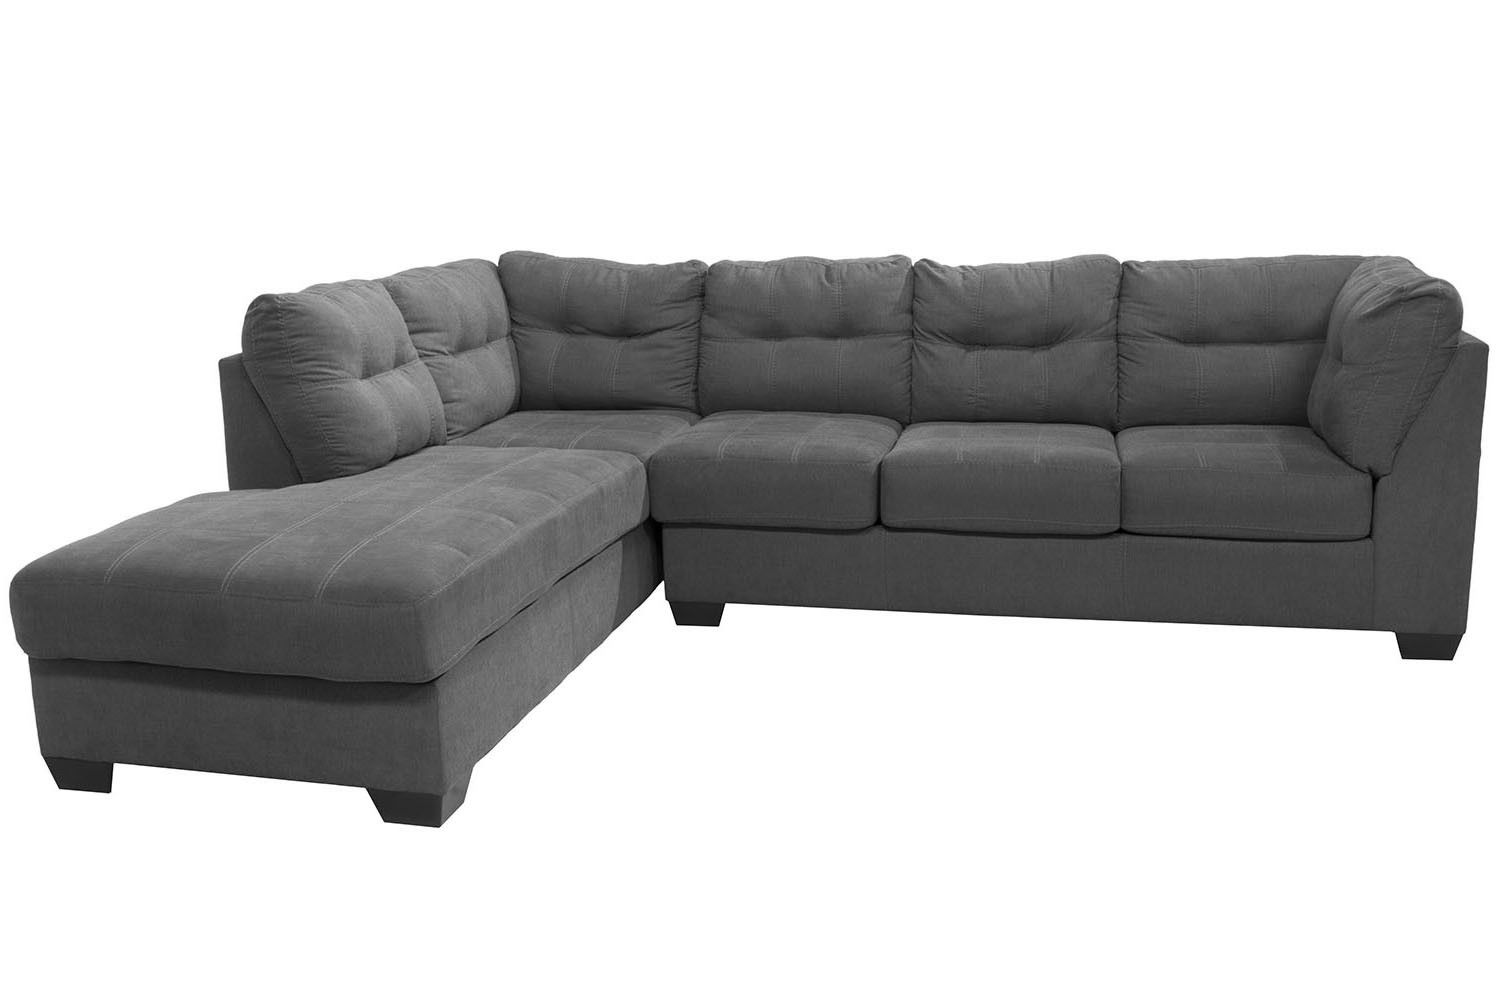 Mor Furniture for Less The Maier Left-Facing Chaise Sectional | Mor Furniture for  sc 1 st  Pinterest & Mor Furniture for Less: The Maier Left-Facing Chaise Sectional ... islam-shia.org